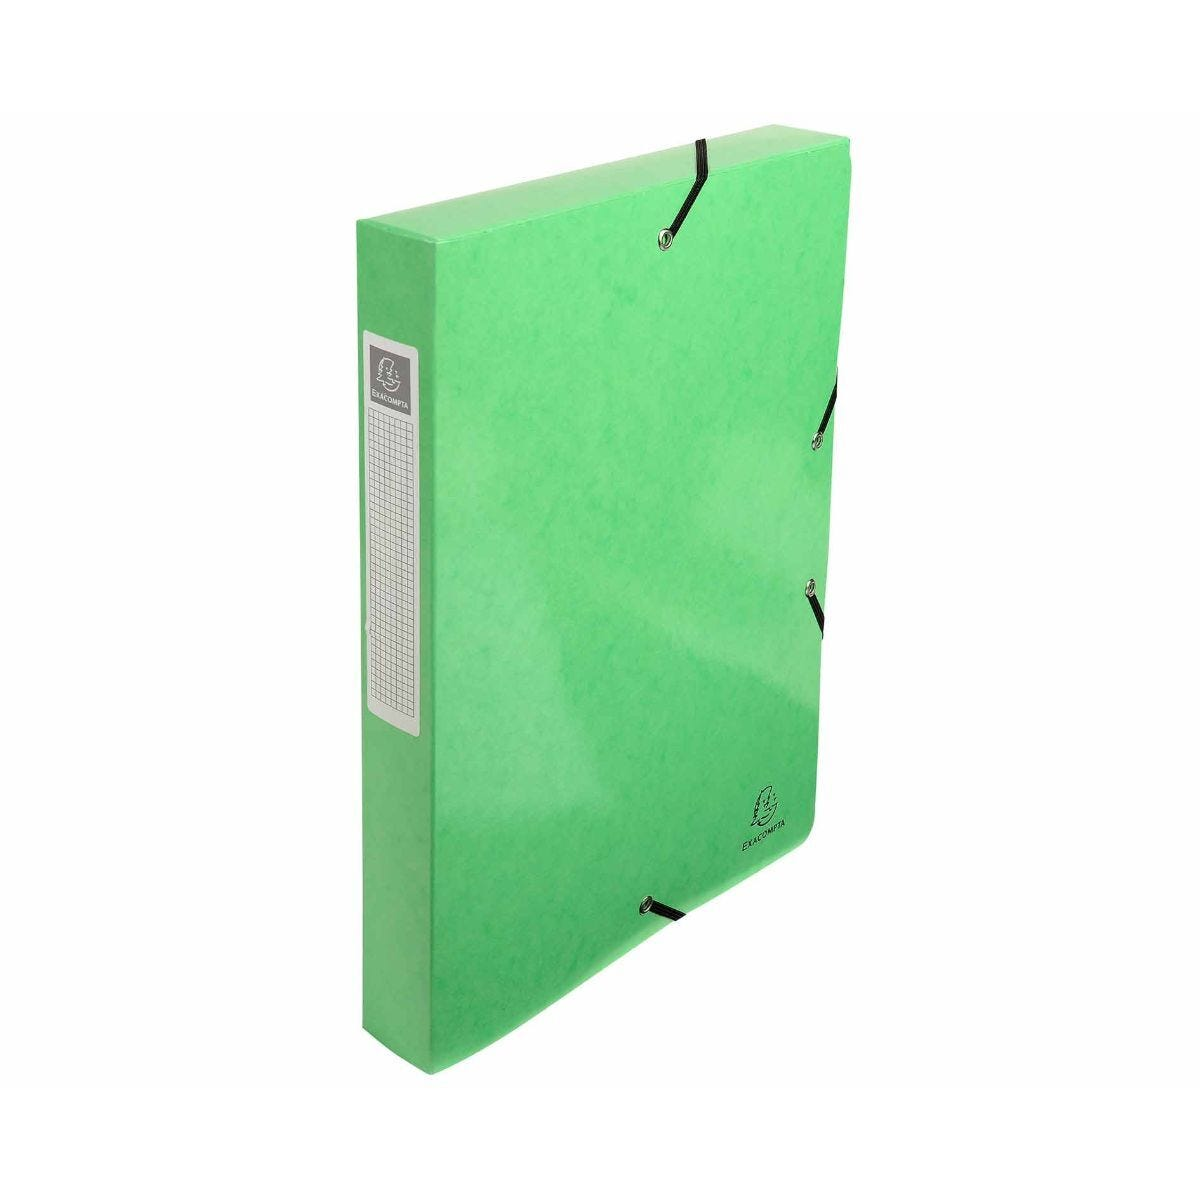 Exacompta Iderama Box File A4 Pack of 8 600gsm Green